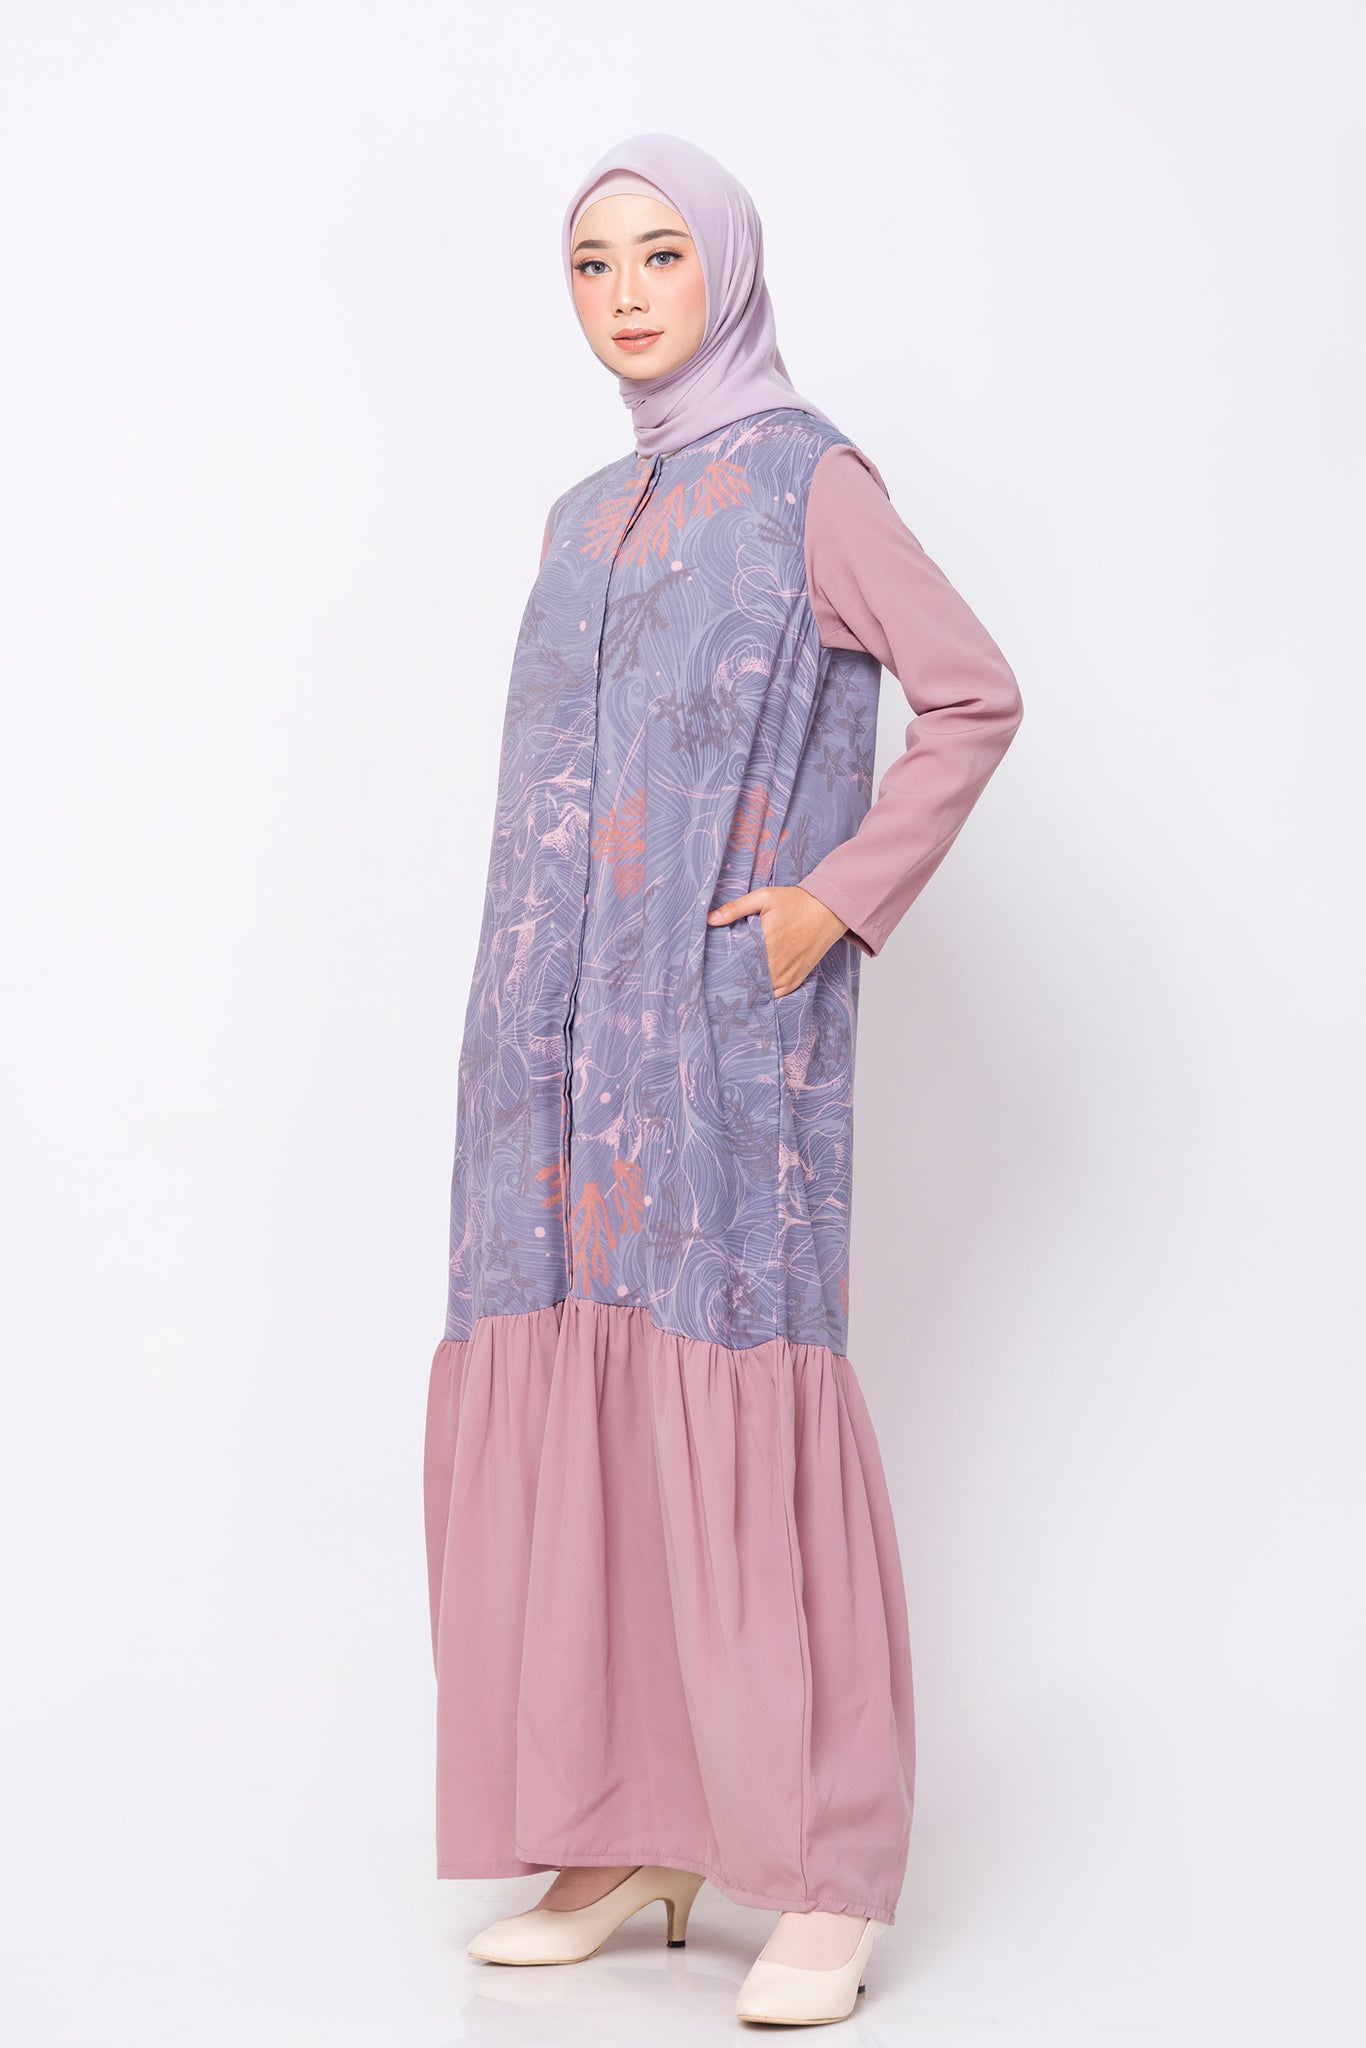 ZM - Laudy Purple Dress - Jelita Indonesia - Edisi Derawan